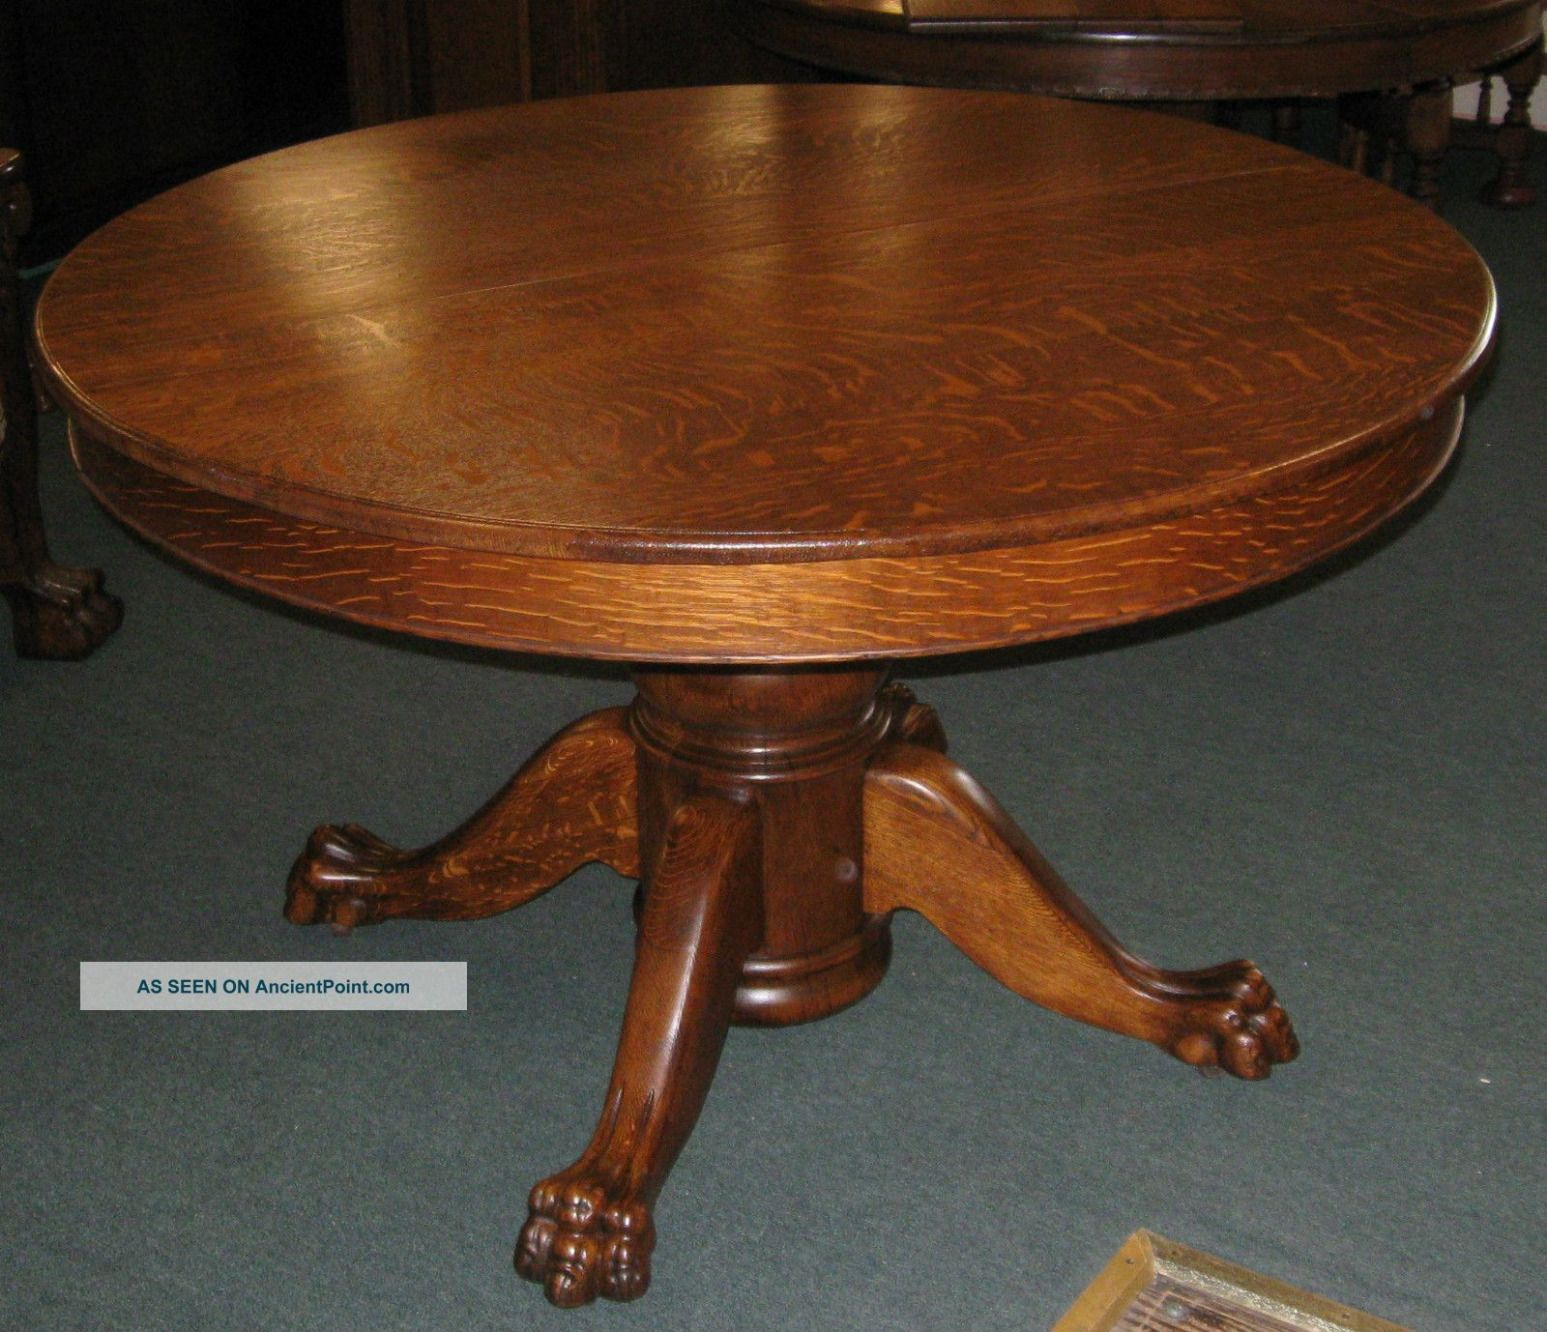 100 Antique Round Oak Table Americas Best Furniture Check More At Http Livelylighting Com Antique Round Oak Dining Table Dining Table Unique Dining Tables